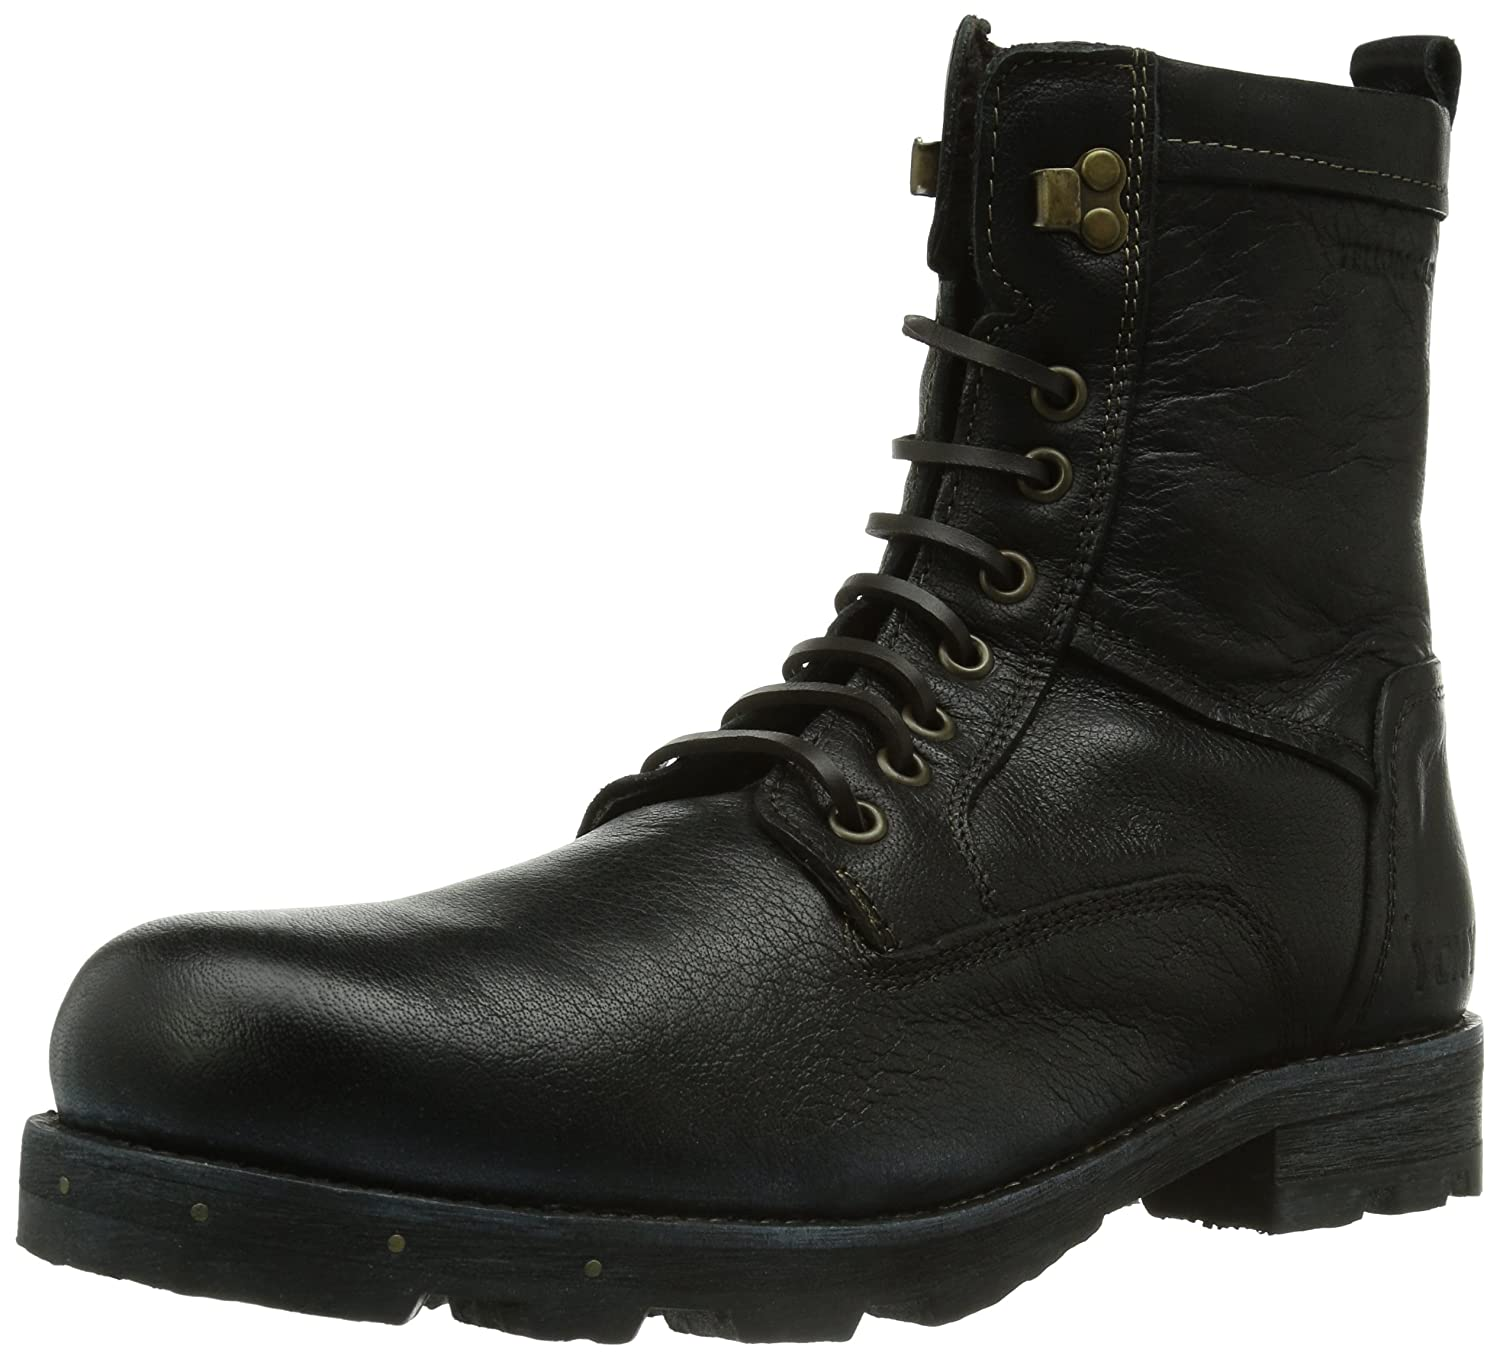 uk availability c9109 1998c Yellow Cab Charger M, Mens Combat Boot, Black (Black), 9.5 ...